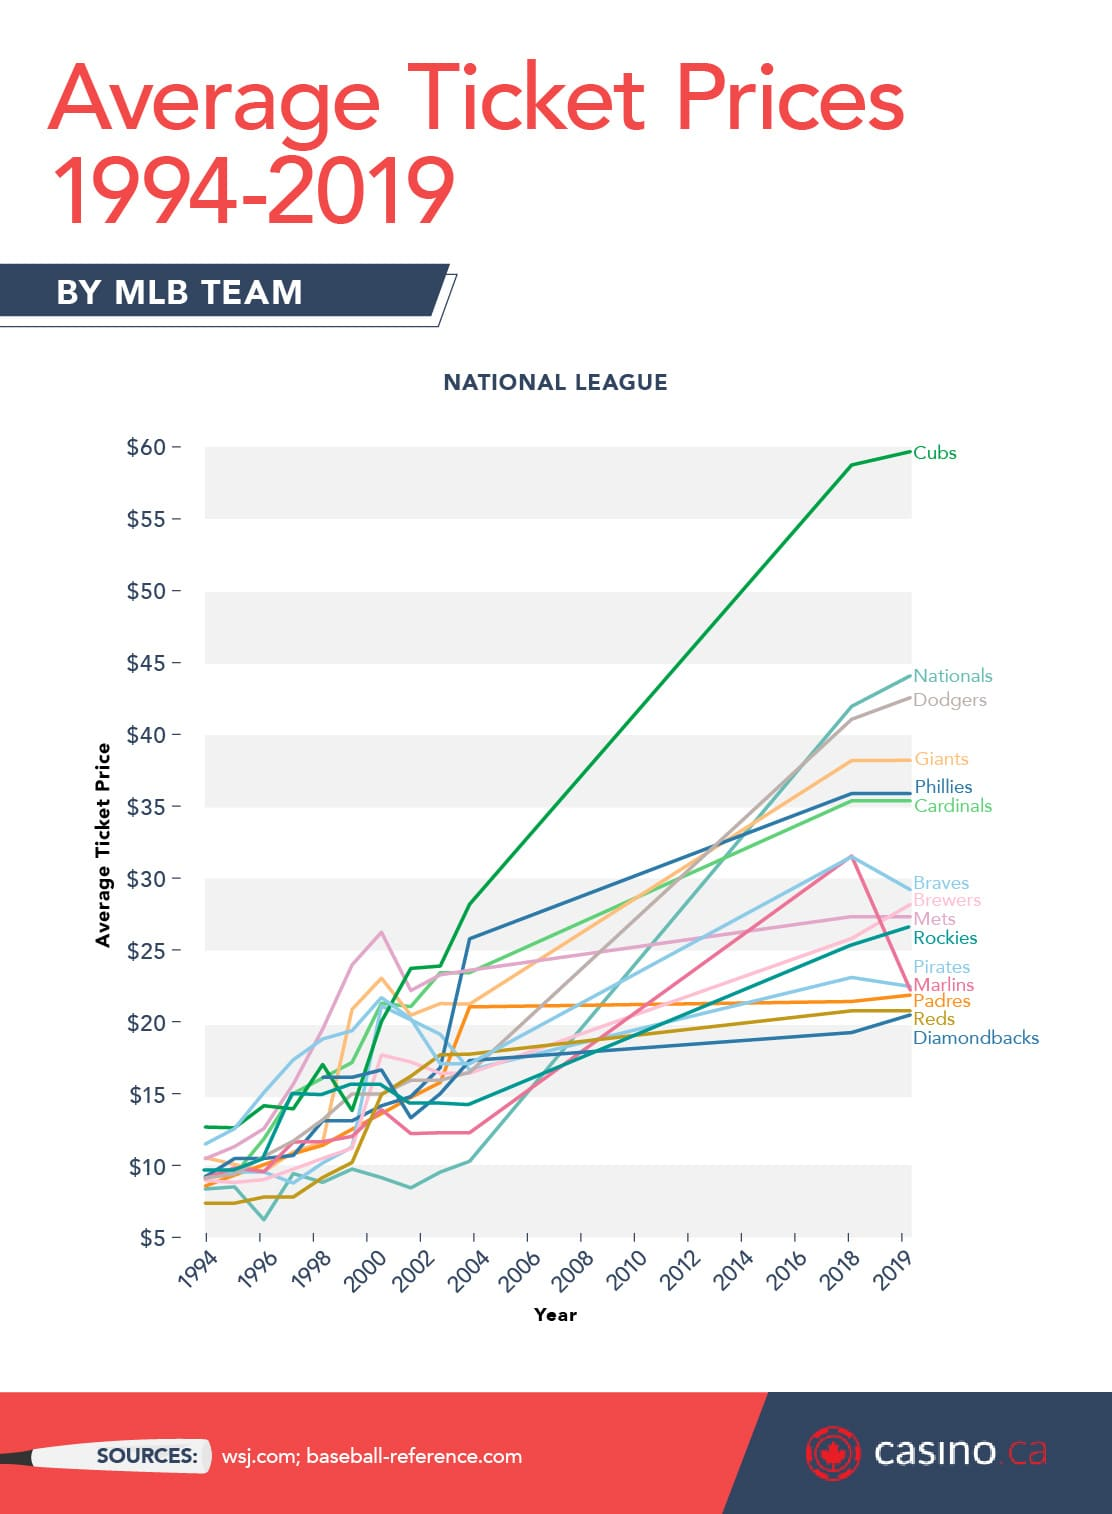 Average ticket prices in the National League 1994 to 2019